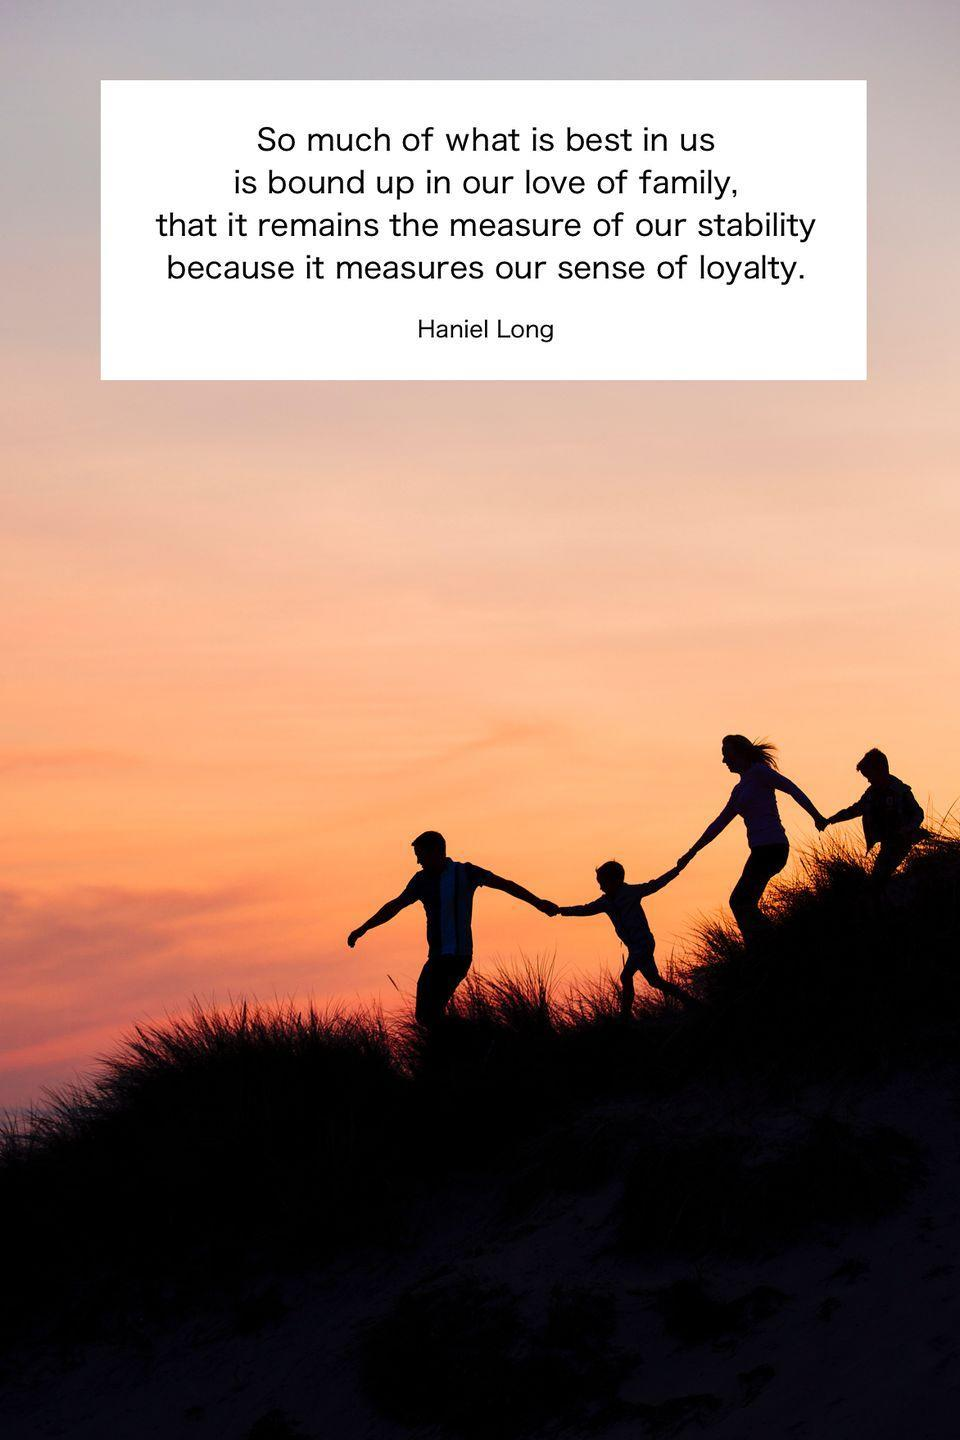 "<p>""So much of what is best in us is bound up in our love of family, that it remains the measure of our stability because it measures our sense of loyalty.""</p>"